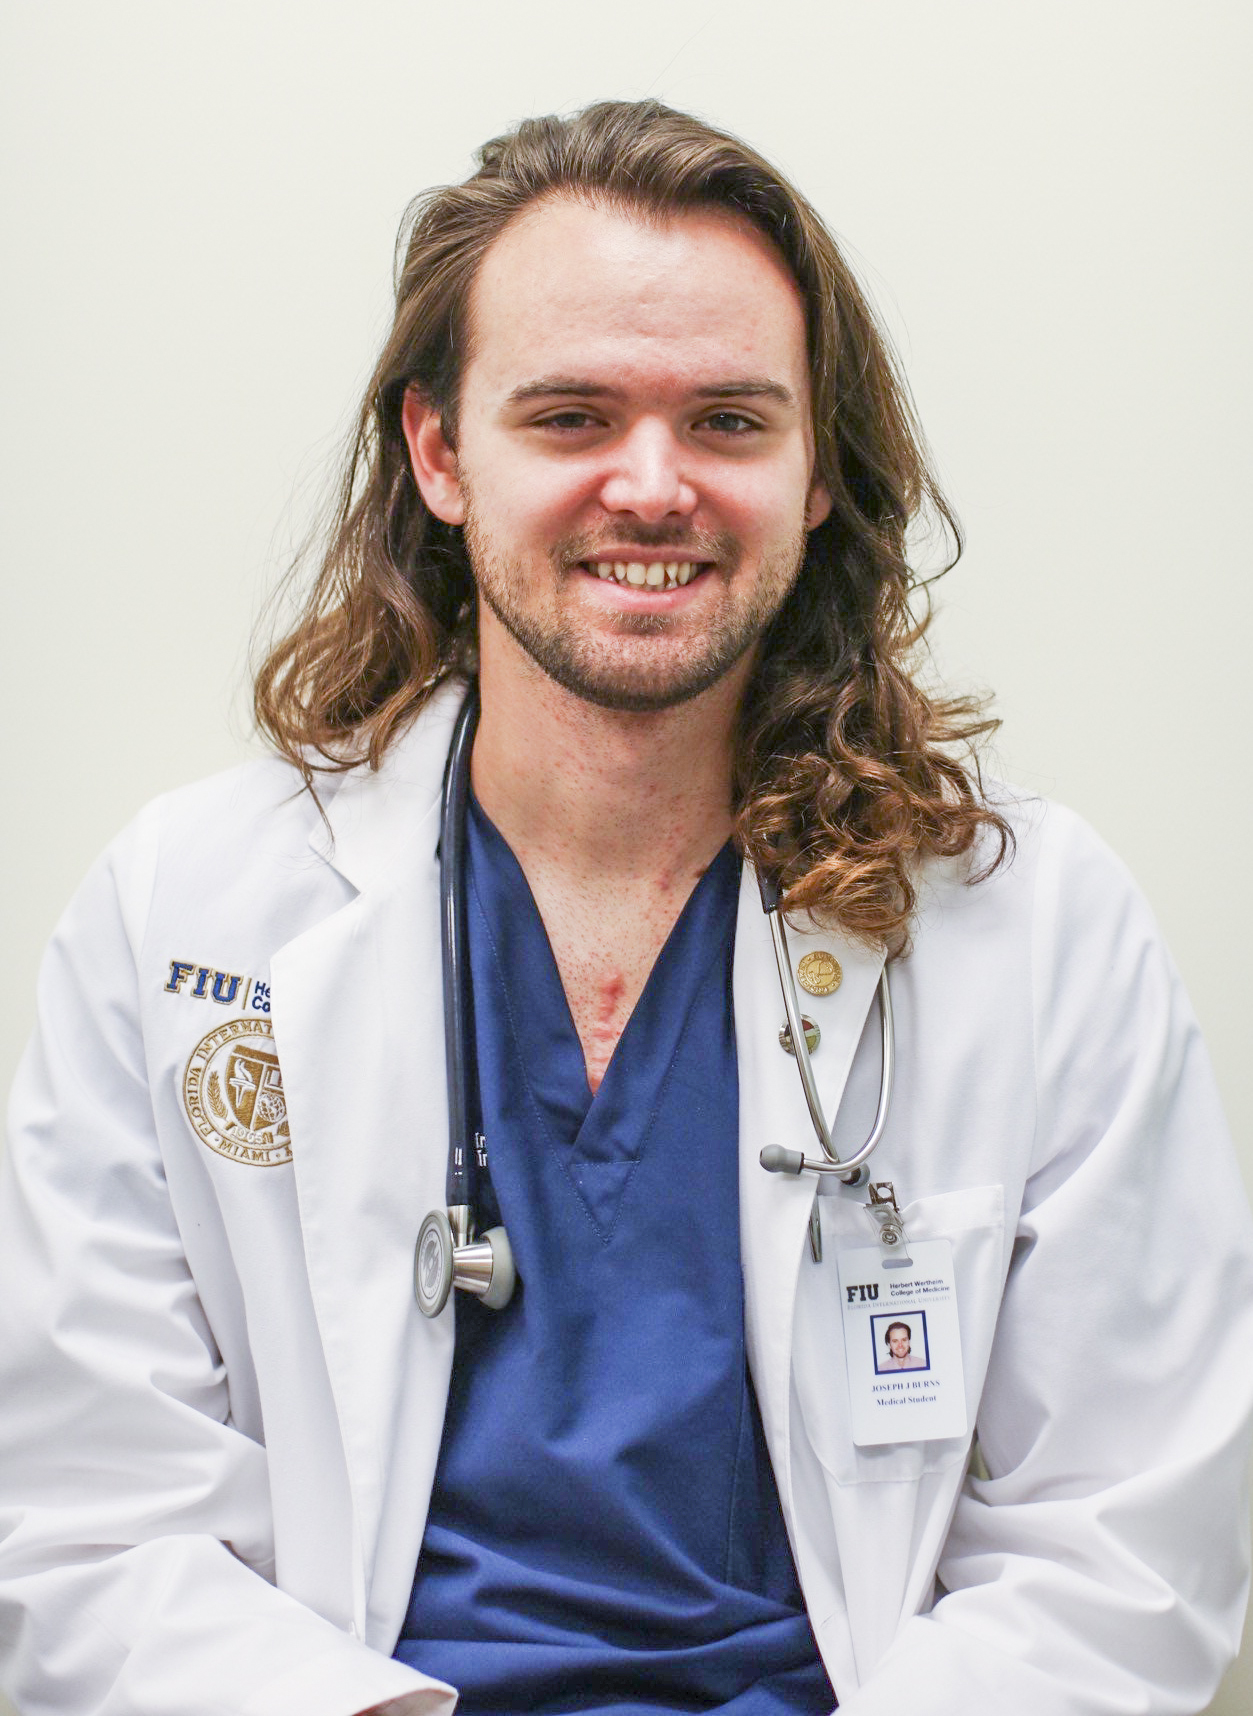 Joseph Burns is a fourth year medical student. He wants to be a cardiologist for adults with congenital heart disease.